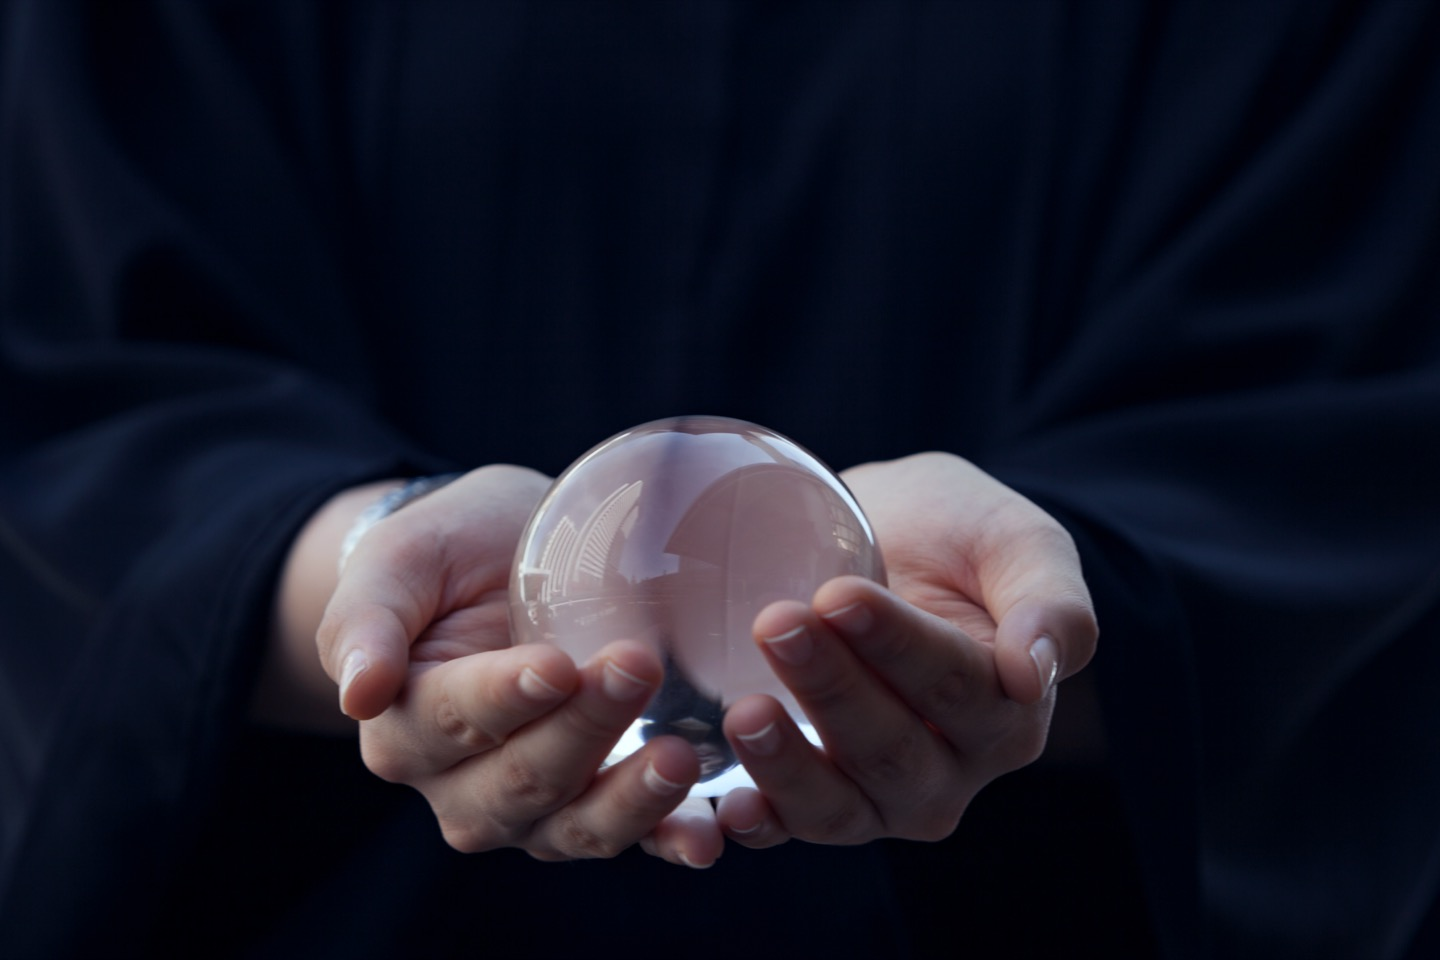 hands holding a glass ball